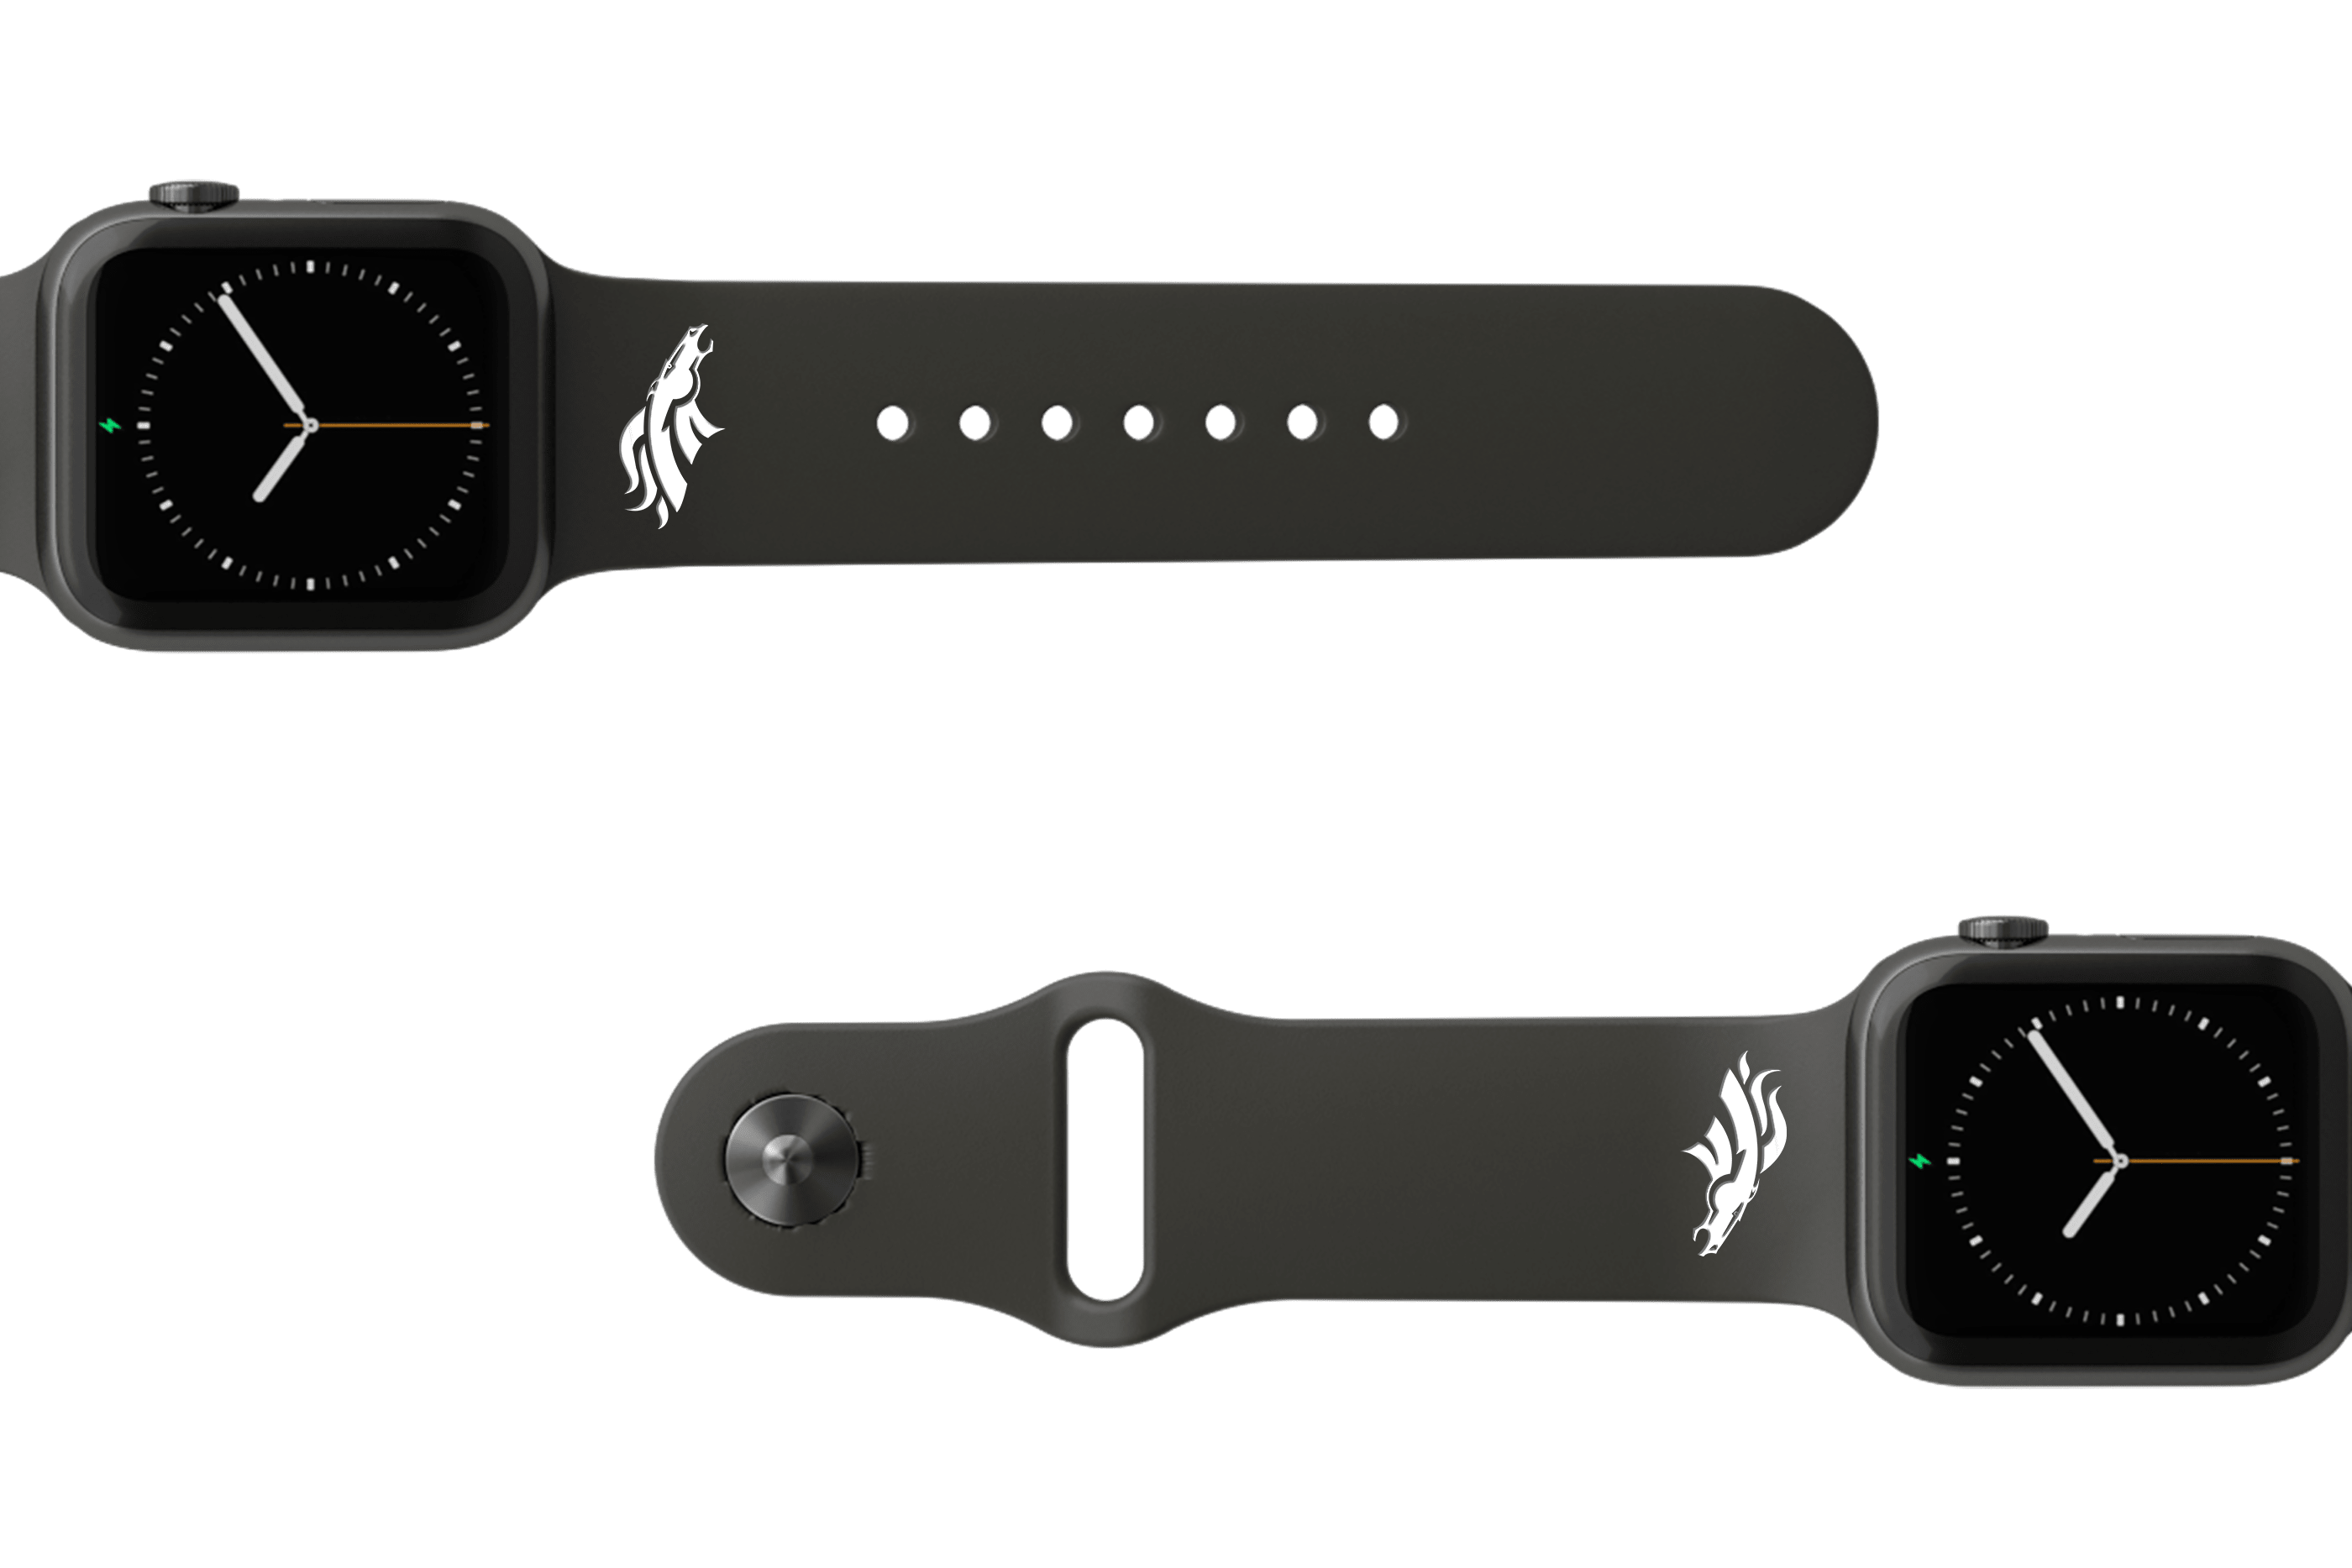 NFL Denver Broncos Black apple watch band with gray hardware viewed from top down